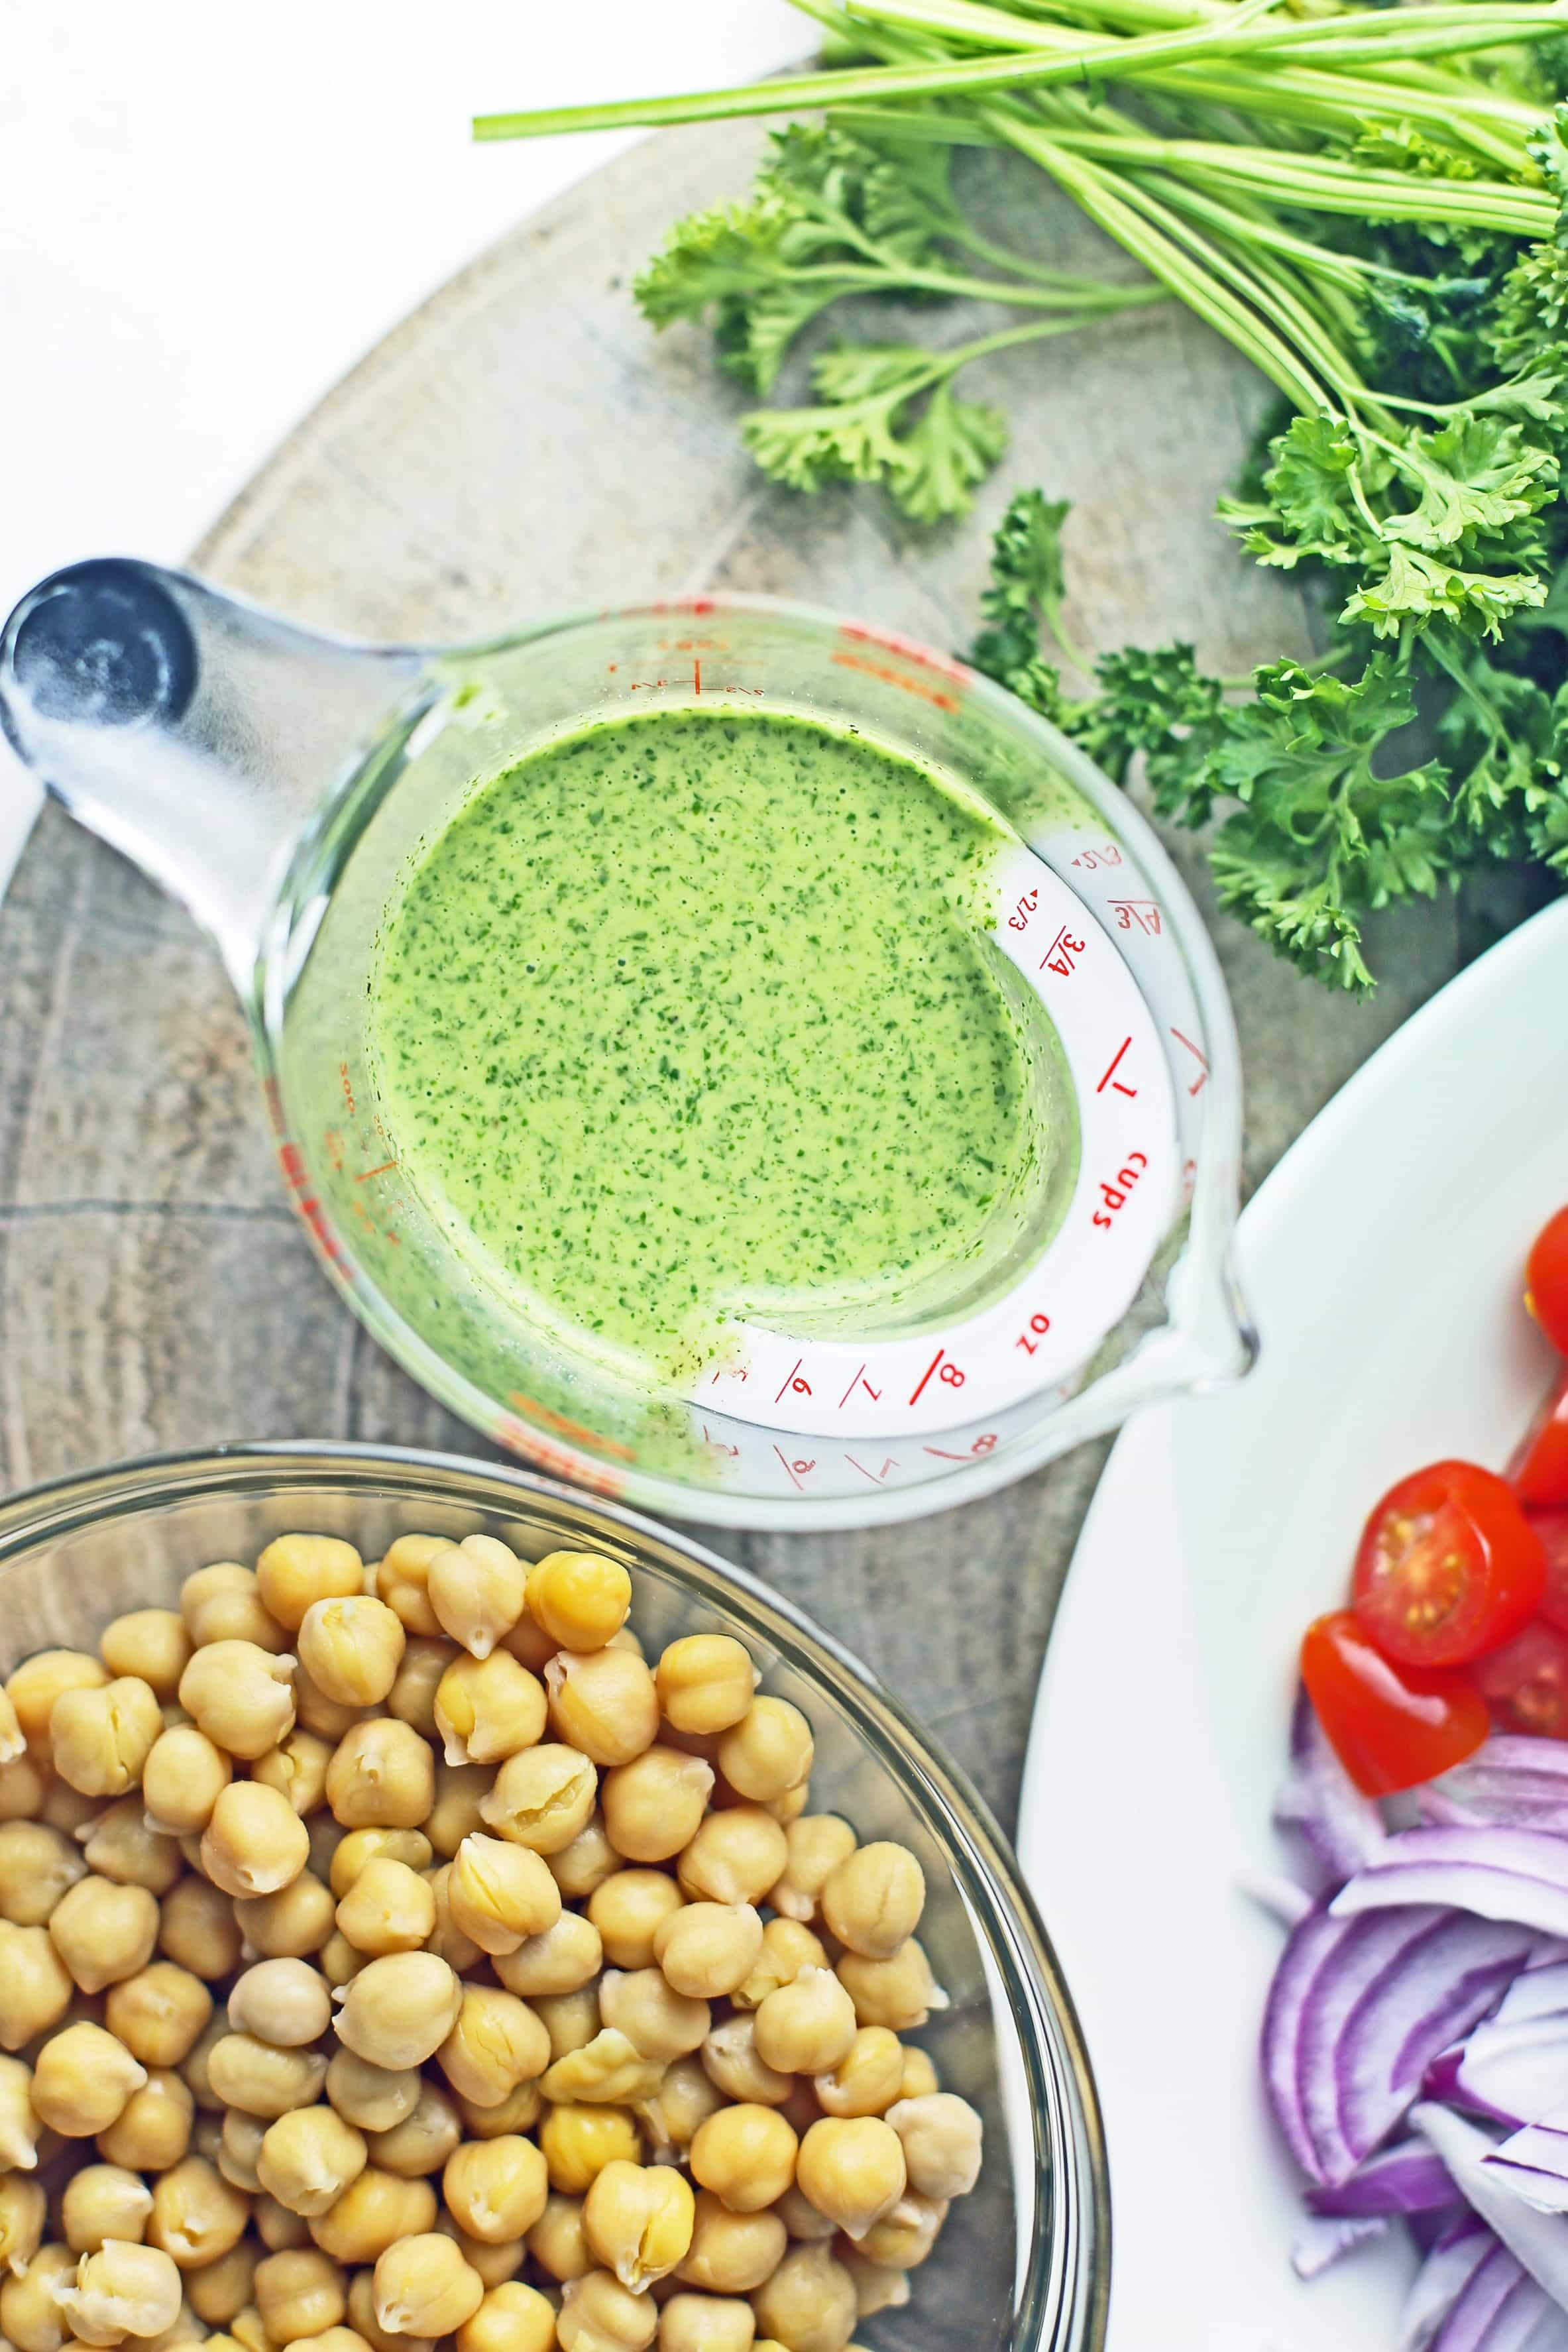 Overhead view of parsley dressing in a measuring cup and cooked chickpeas in a glass bowl.